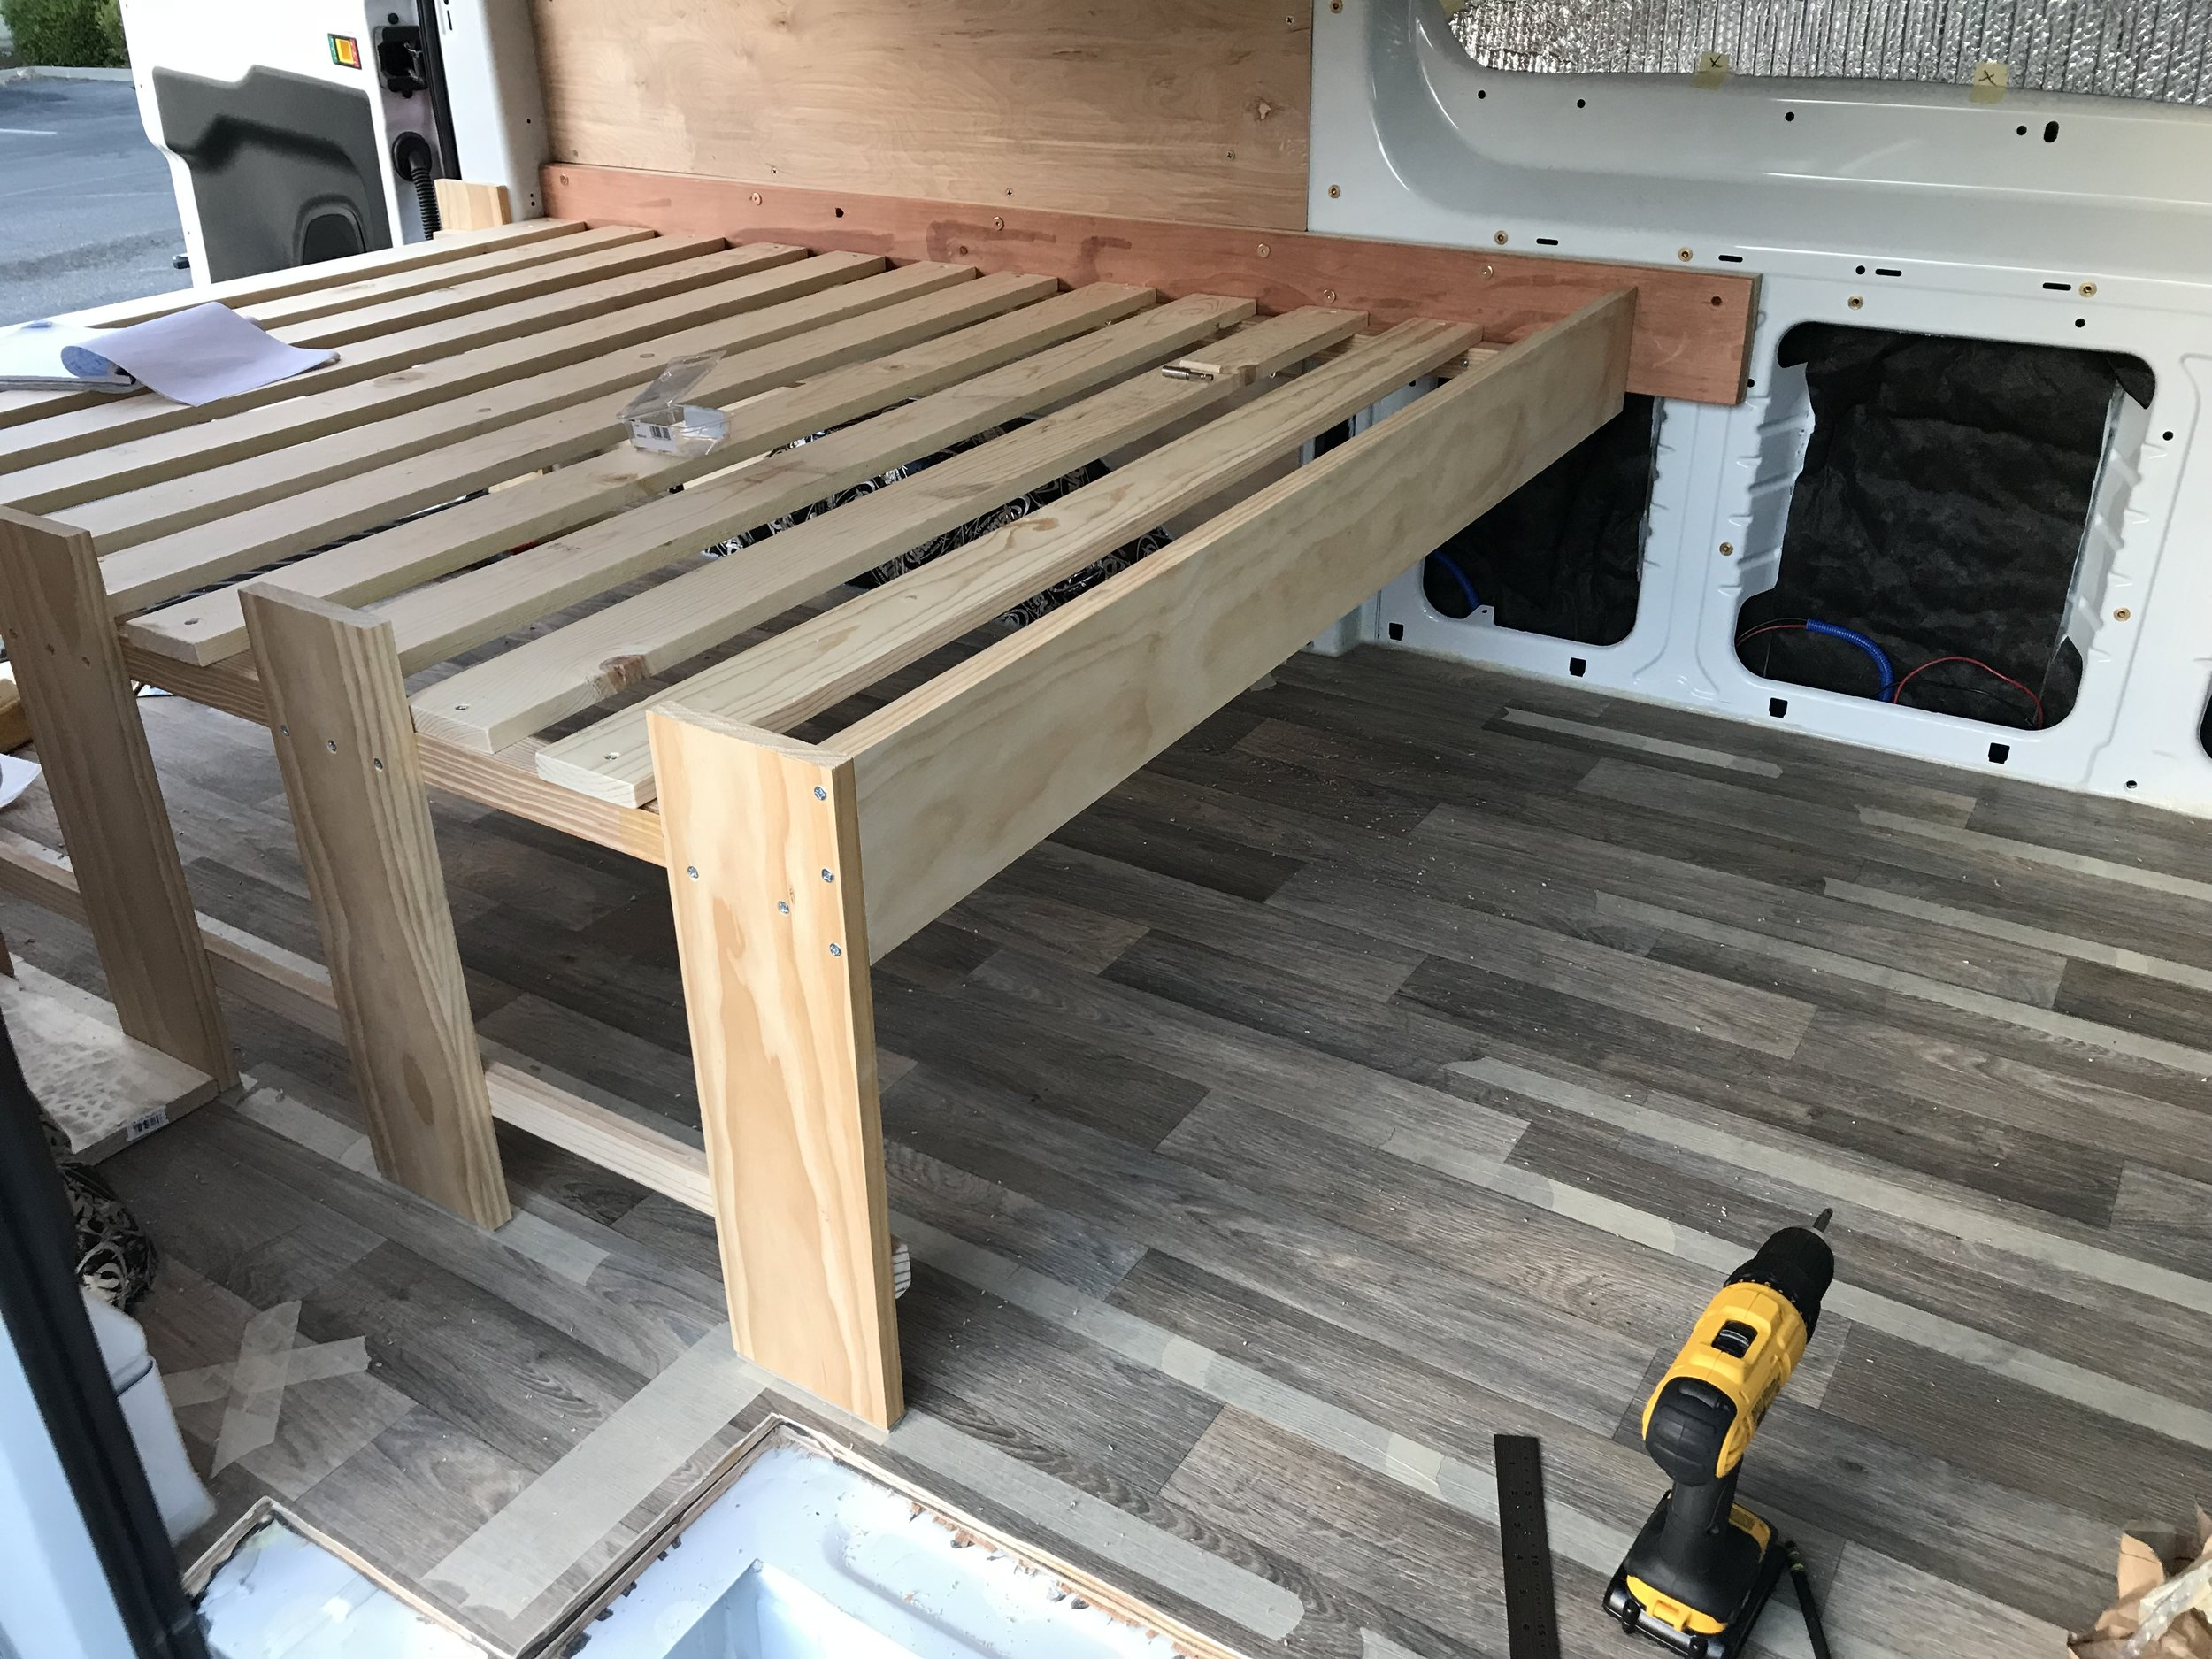 Completed bed